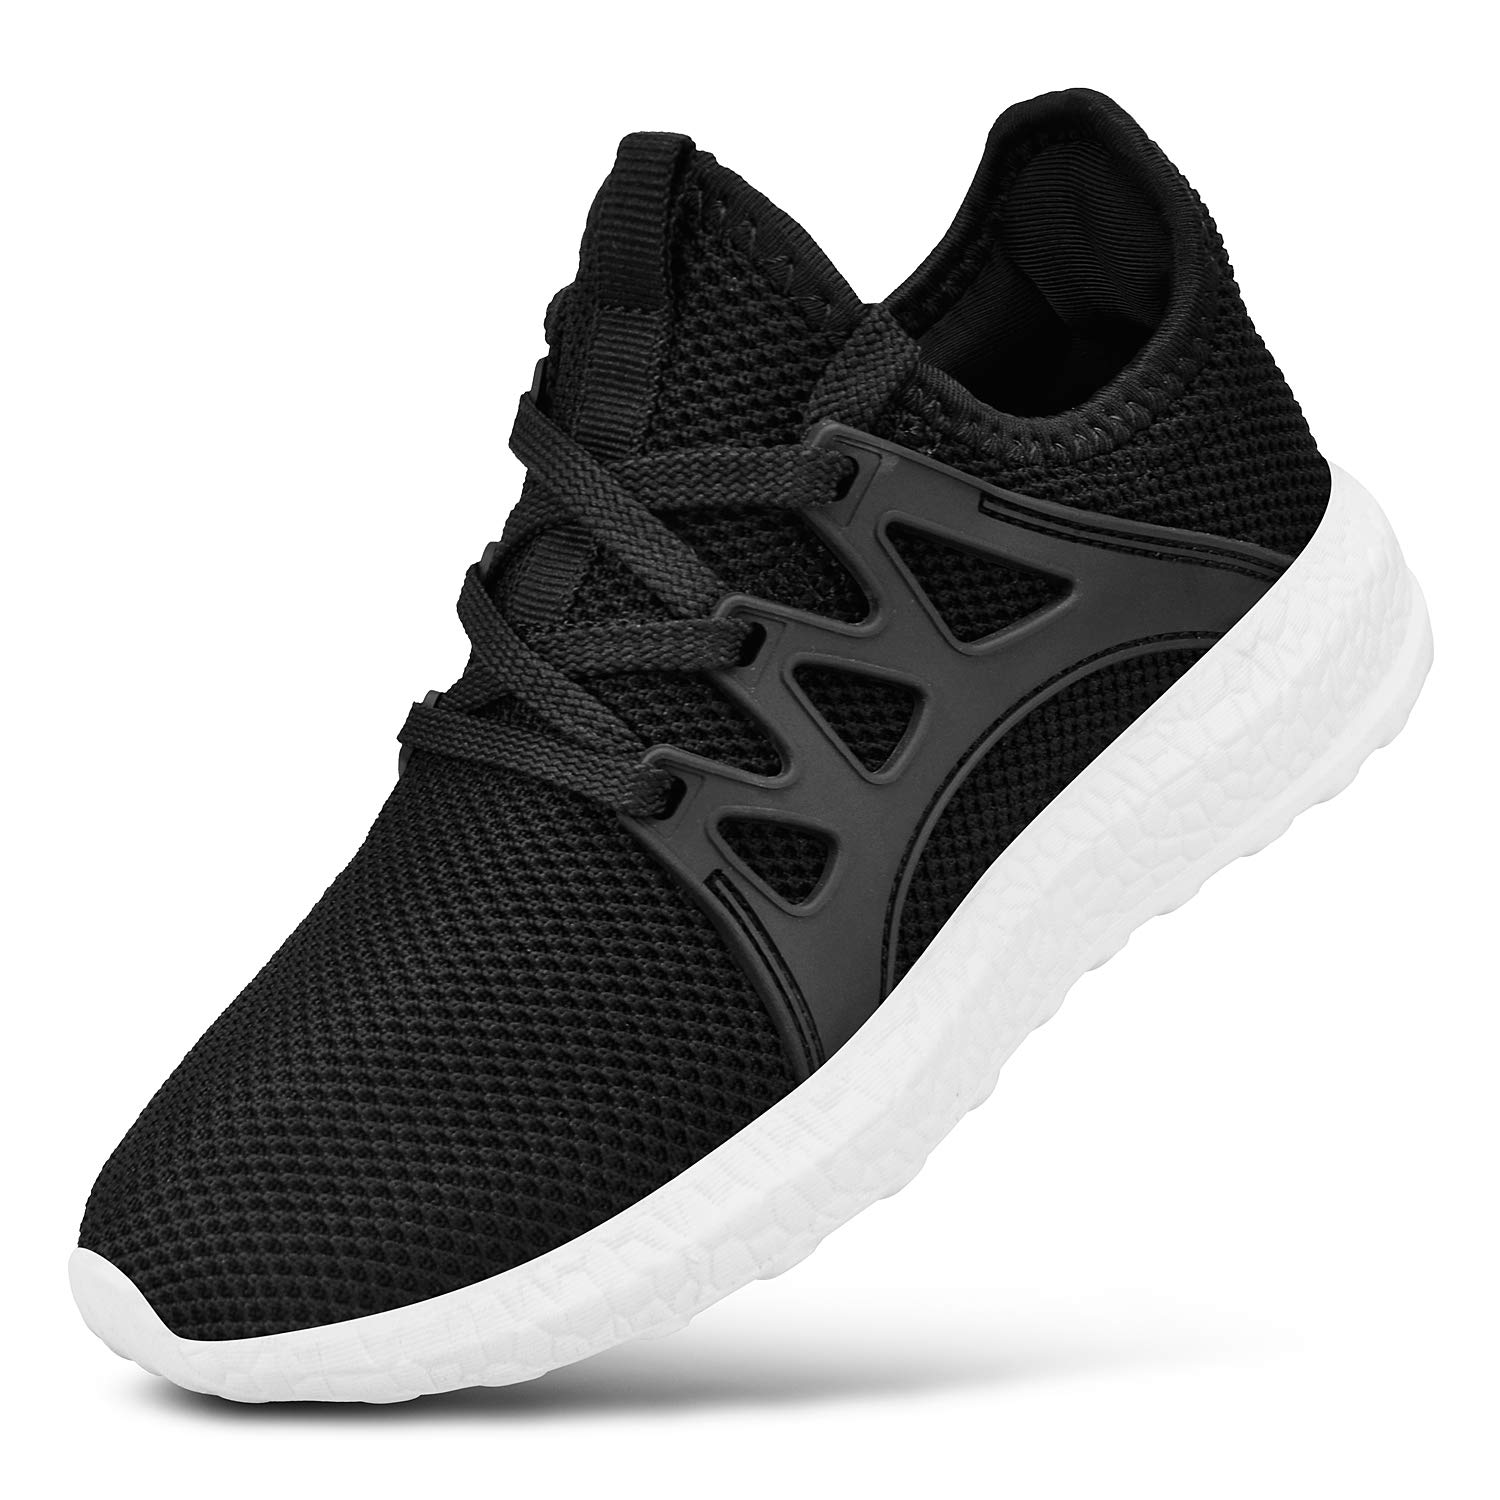 SouthBrothers Boys Shoes Lace Up Breathable Black Sneakers for Girls Black White Size 1.5 M US Little Kid